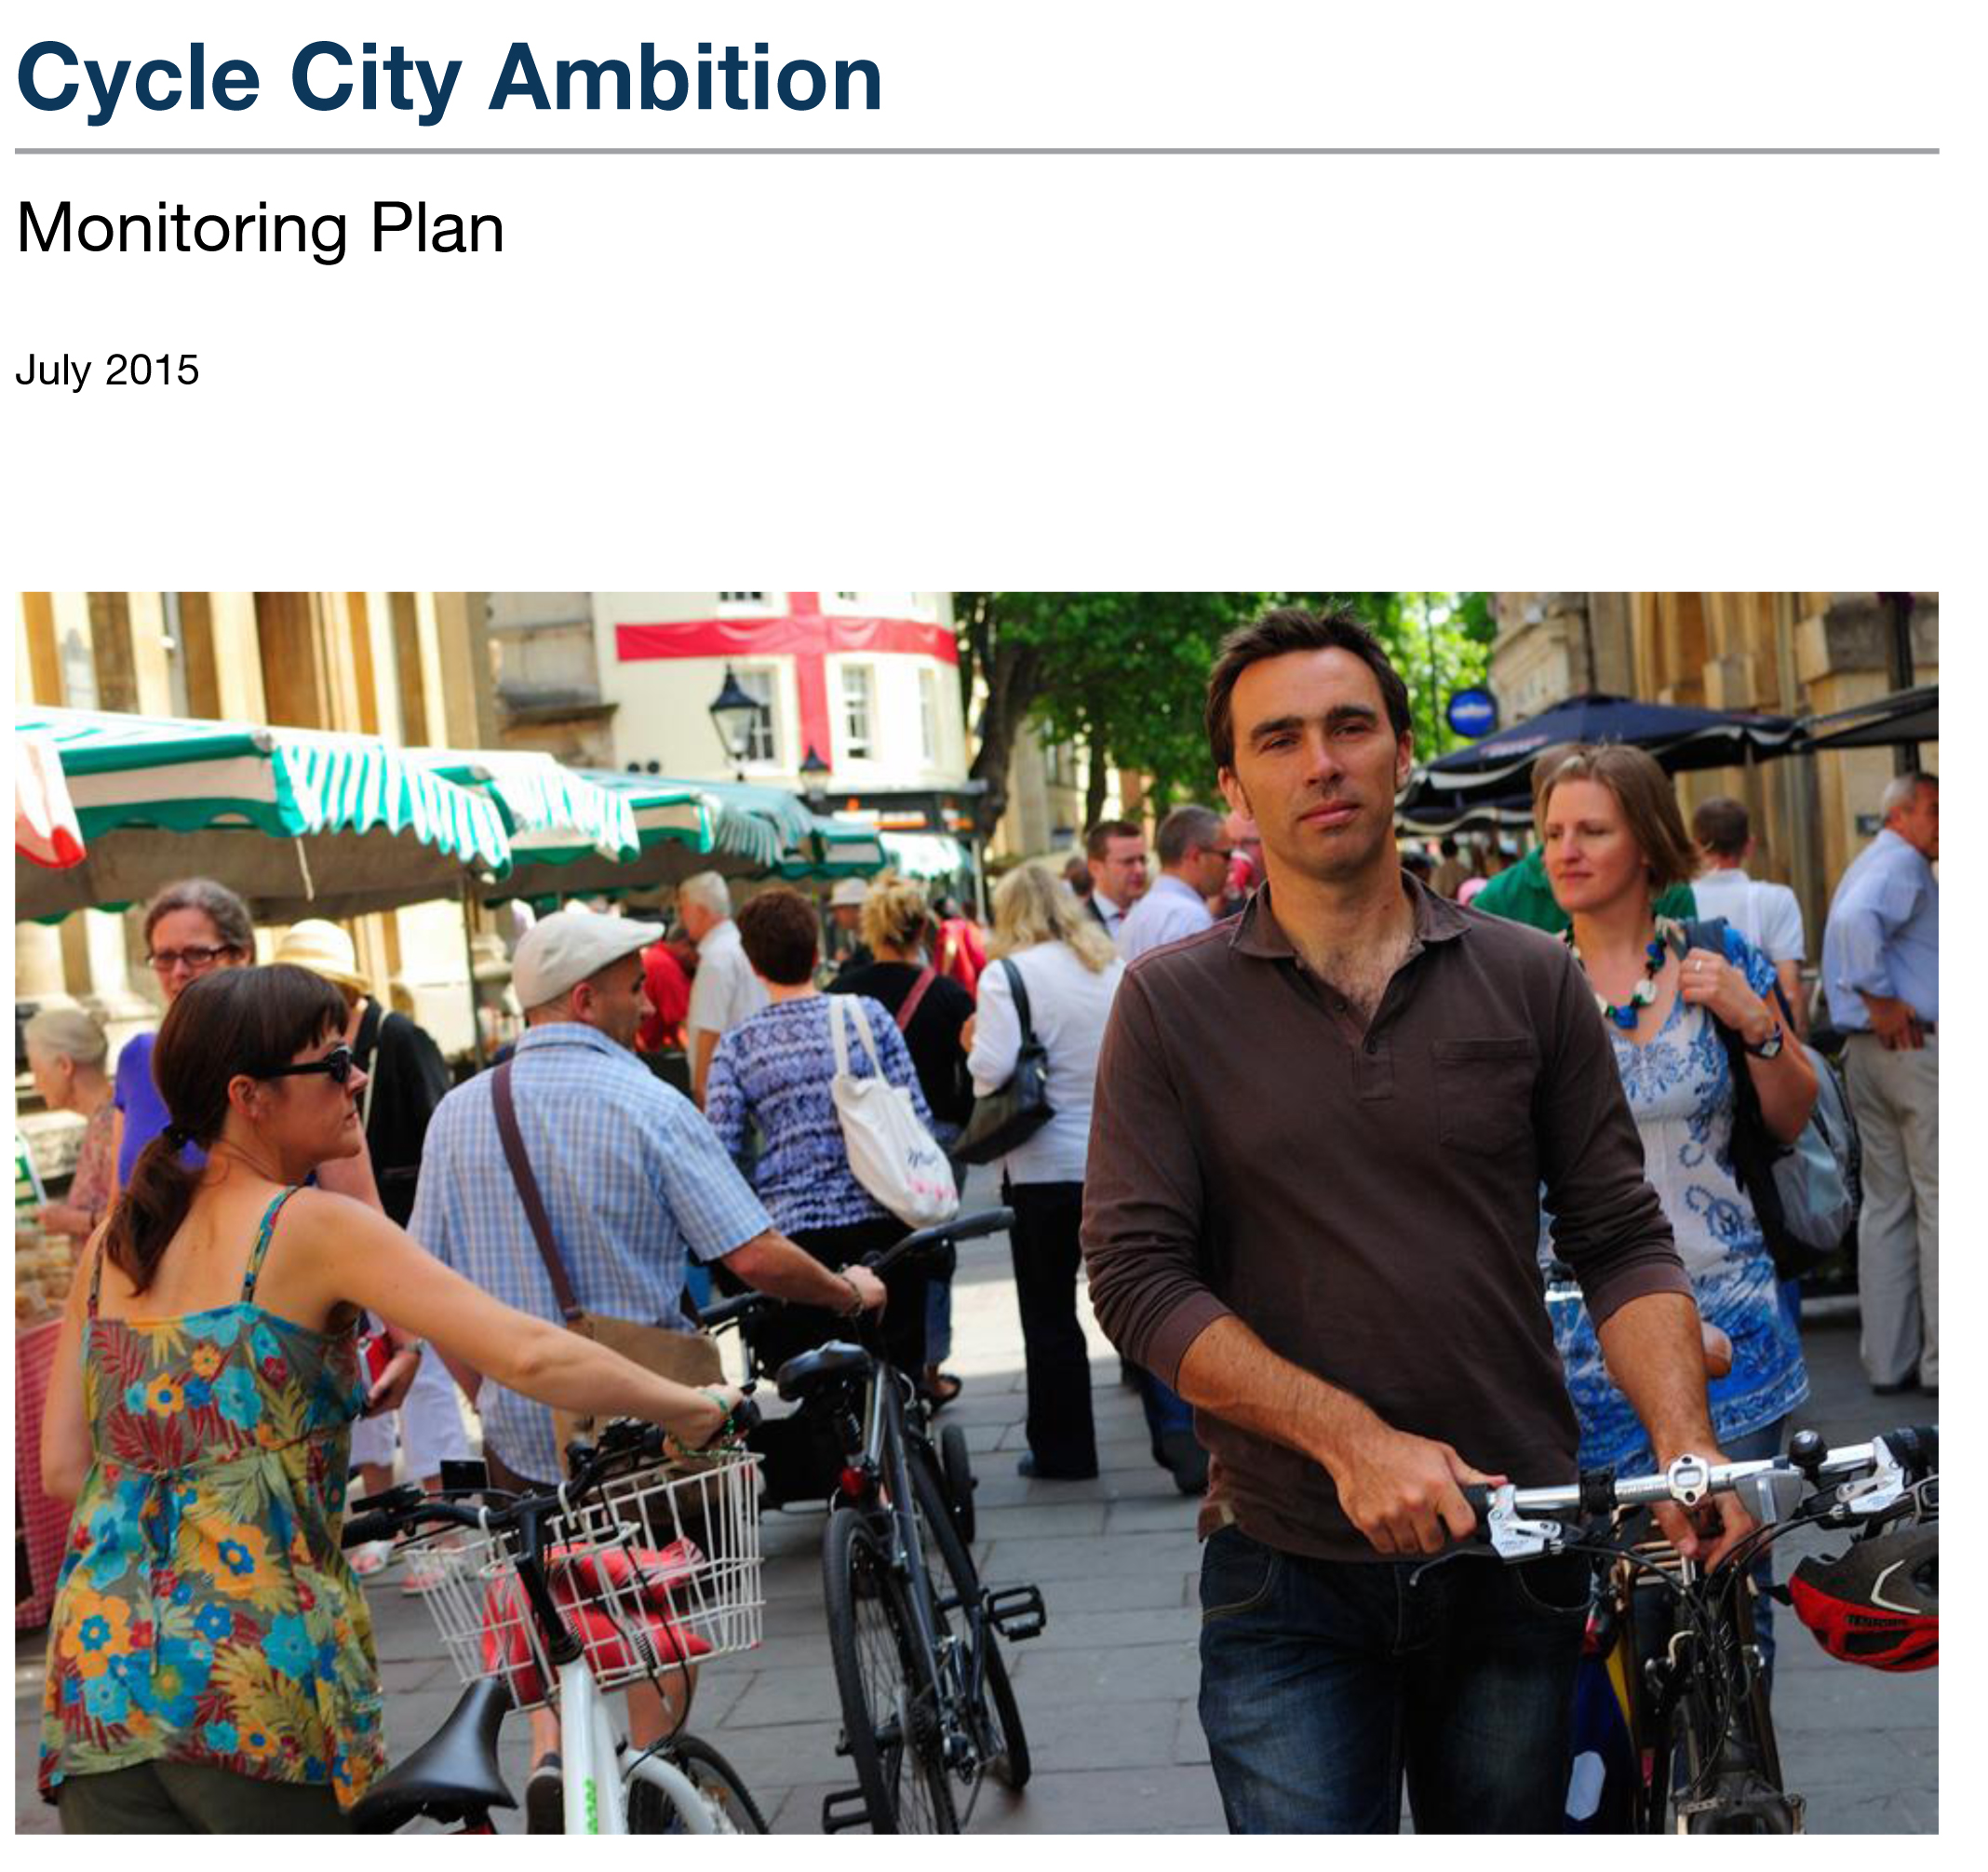 Cycle city ambition grant monitoring plan